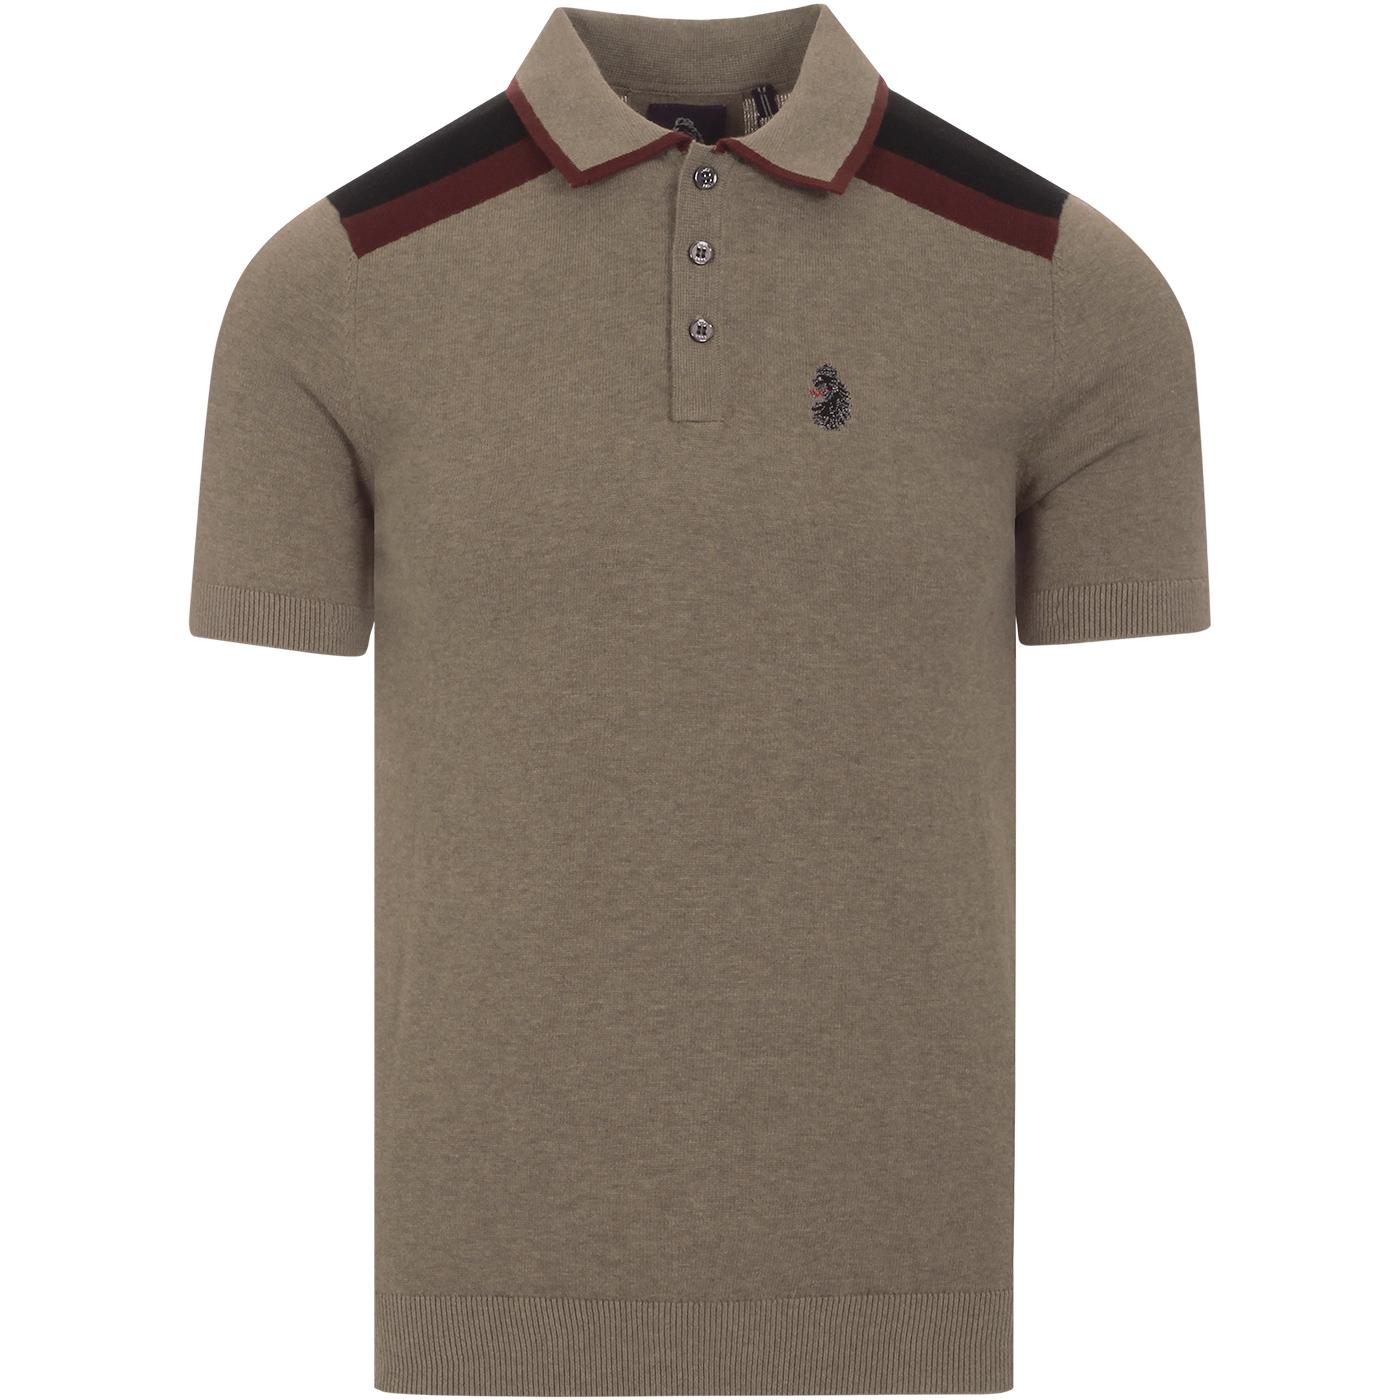 Town Crier LUKE Retro Mod Knit Panel Polo Top (O)